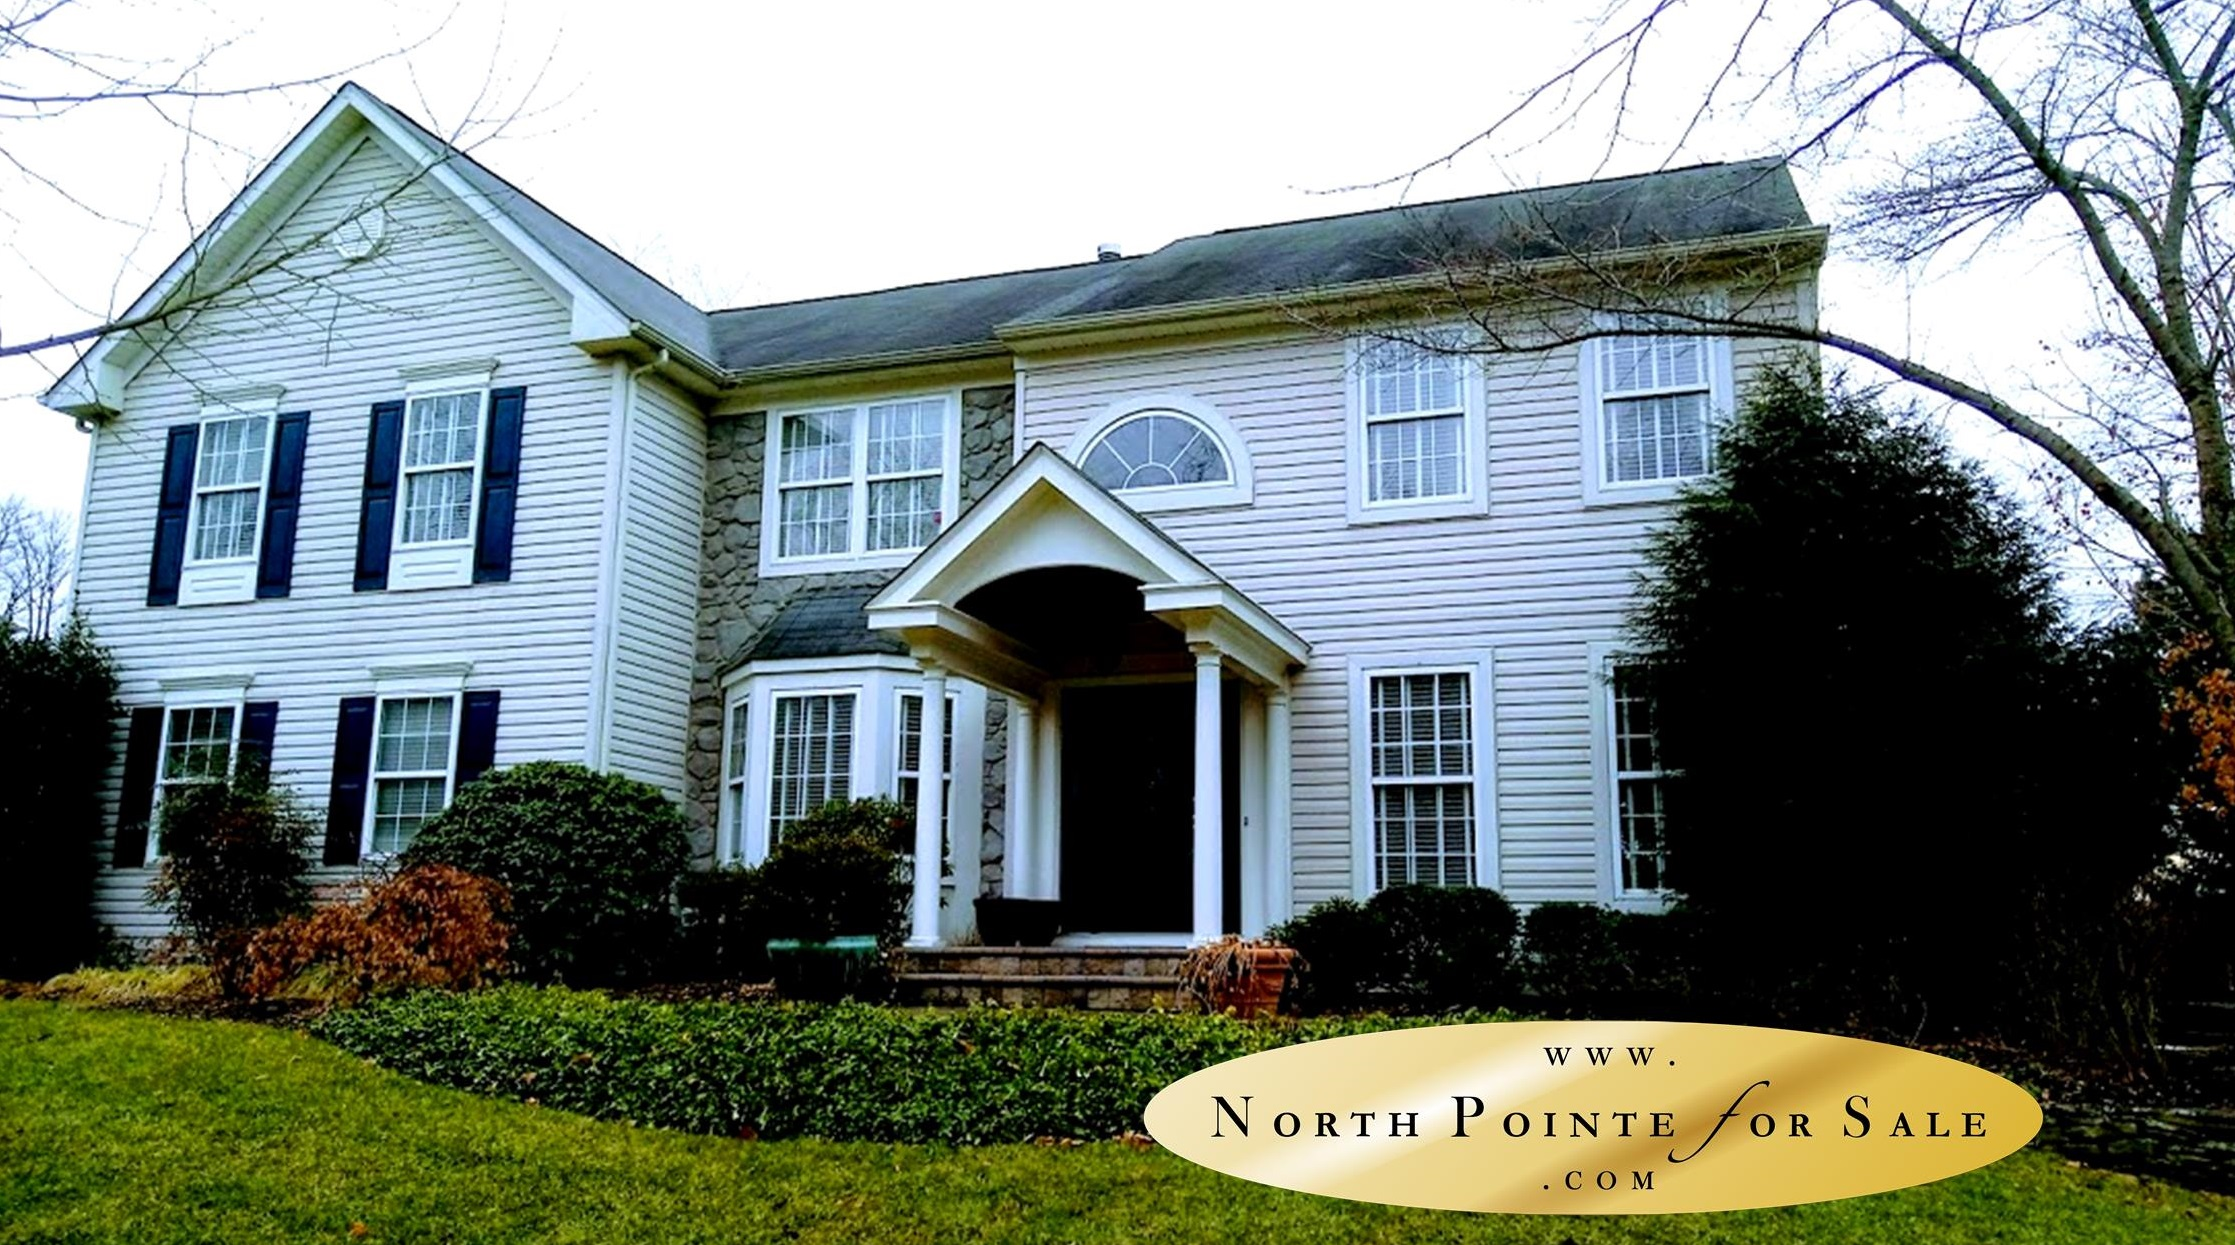 North Pointe for Sale | www.NorthPointeForSale.com | New Hope Realtor | North Pointe Realtor | New Hope PA Homes for Sale